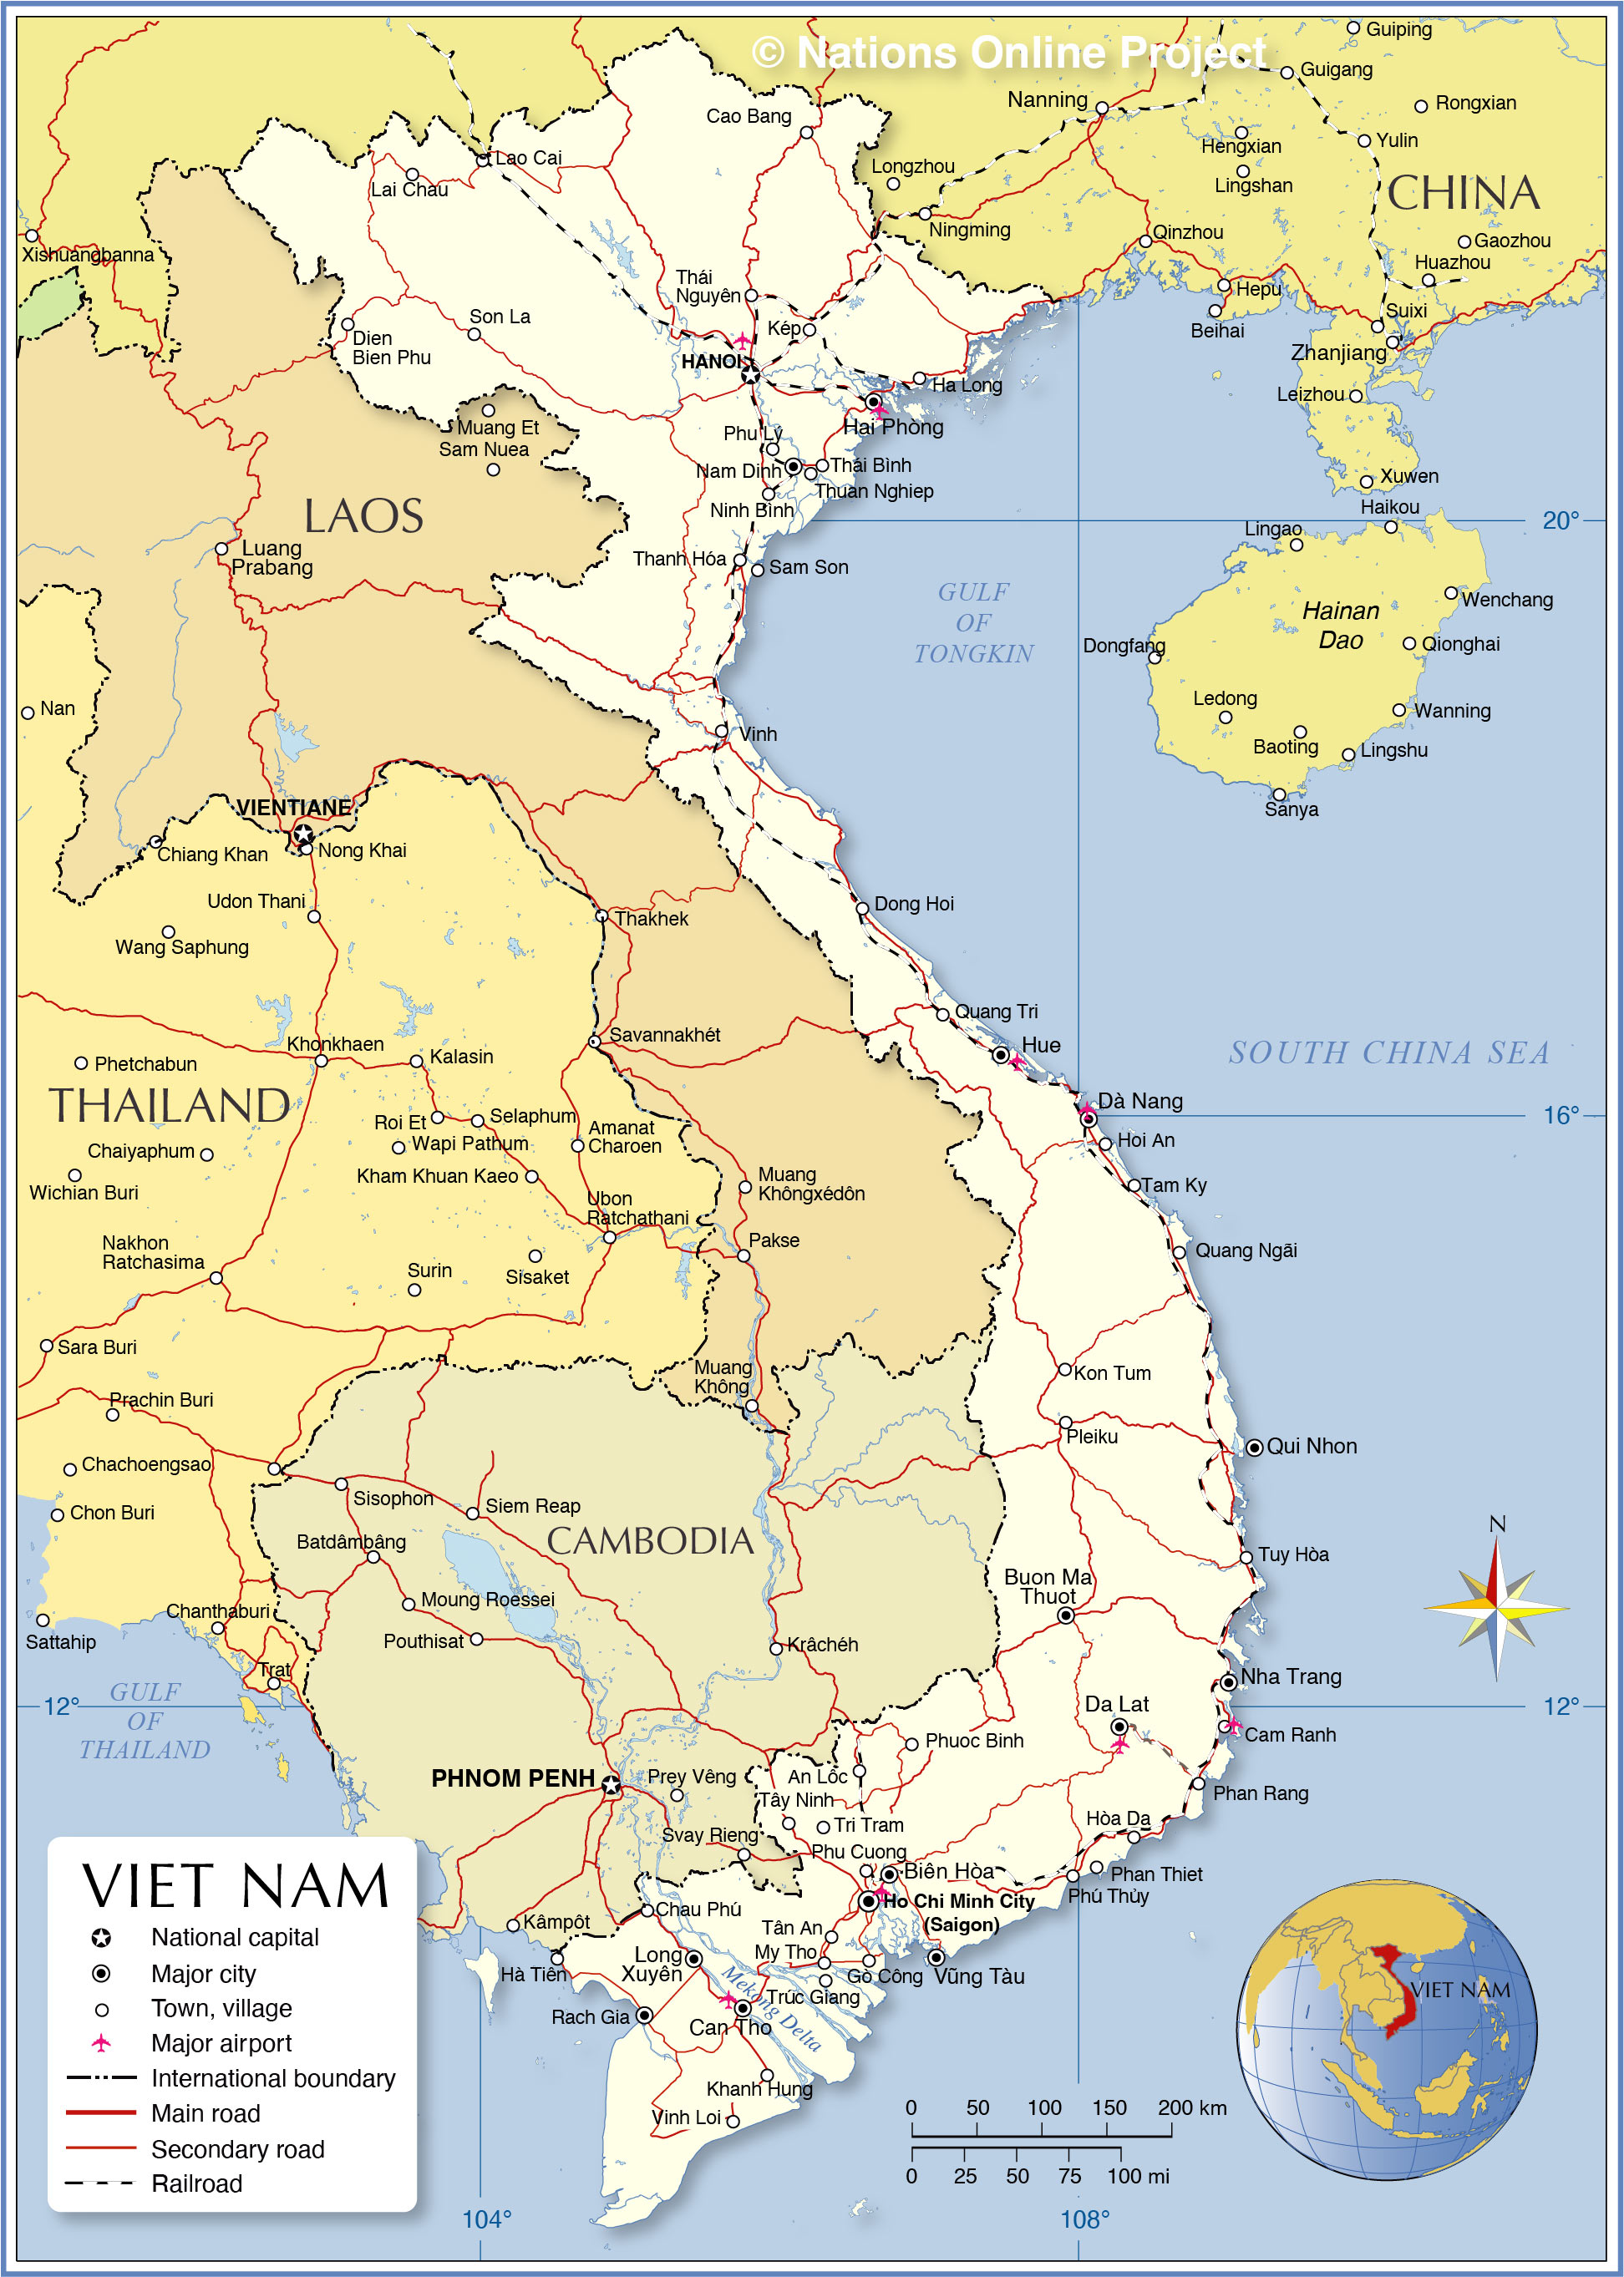 Political Map of Vietnam - Nations Online Project